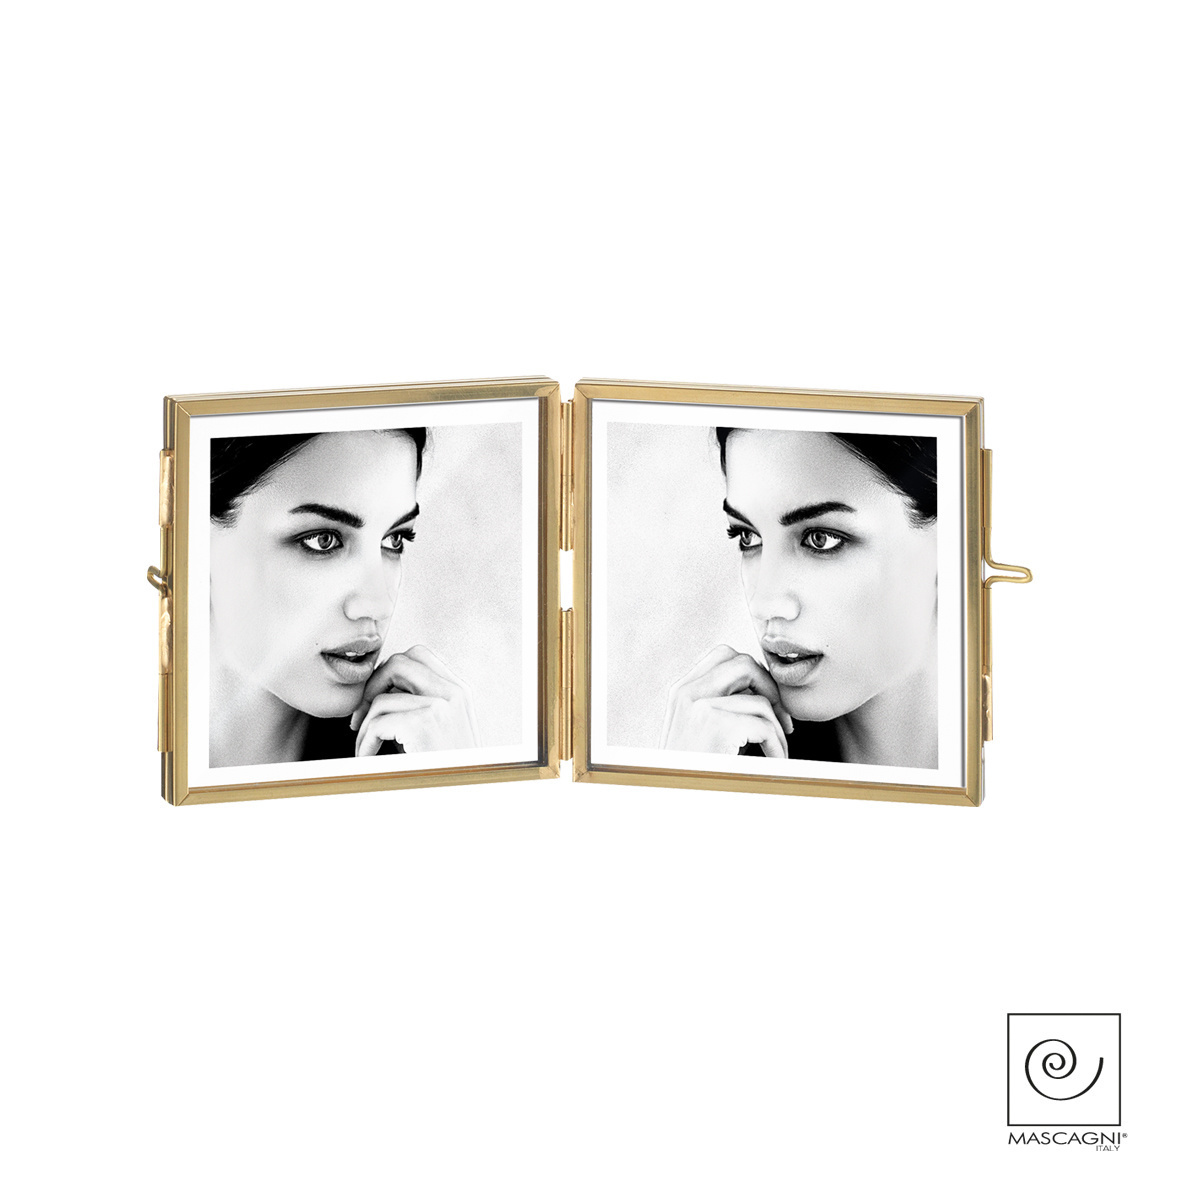 Art Mascagni A858 MULTIPLE FRAME 13X18 IN BRASS